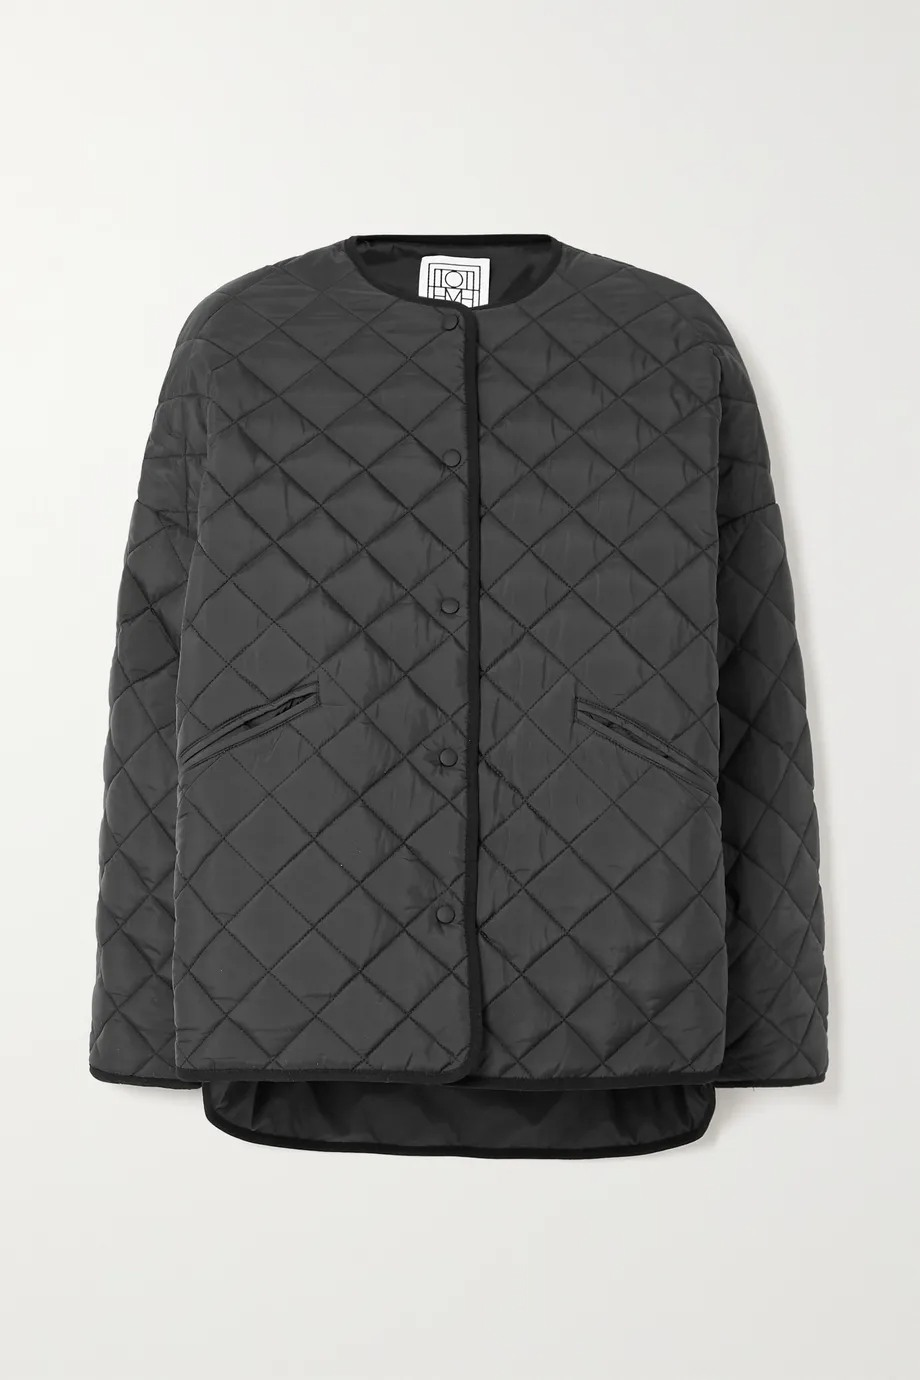 toteme-dublin-oversized-quilted-shell-jacket